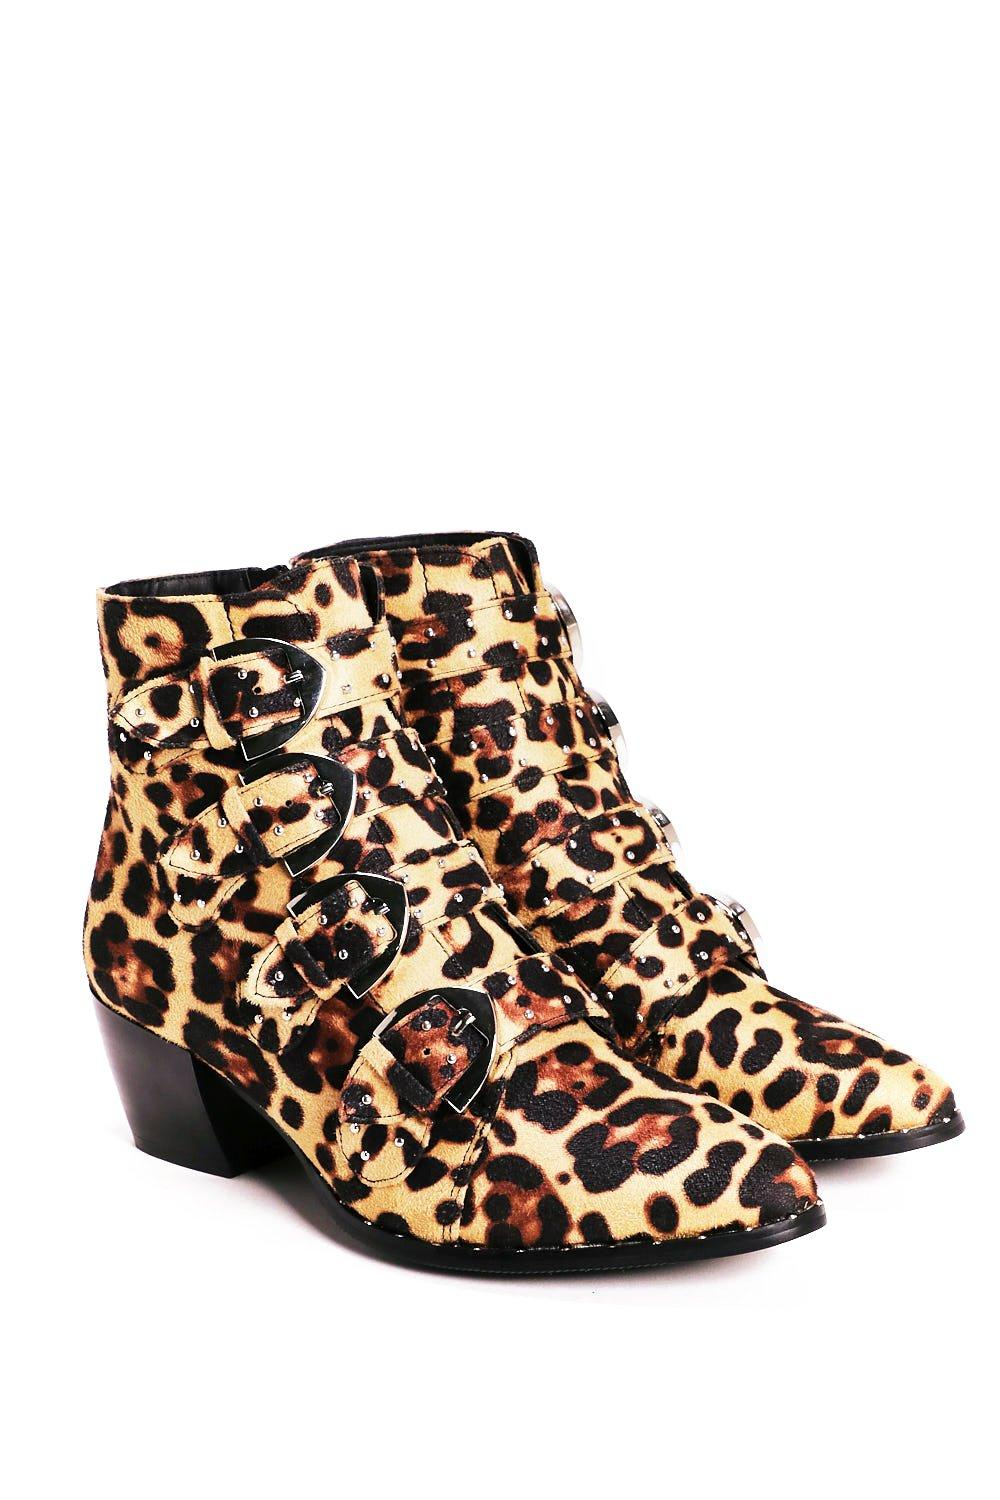 discount view Wild Cat Ankle Boot for cheap cheap online outlet great deals extremely cheap online clearance best prices VkzLO559NP